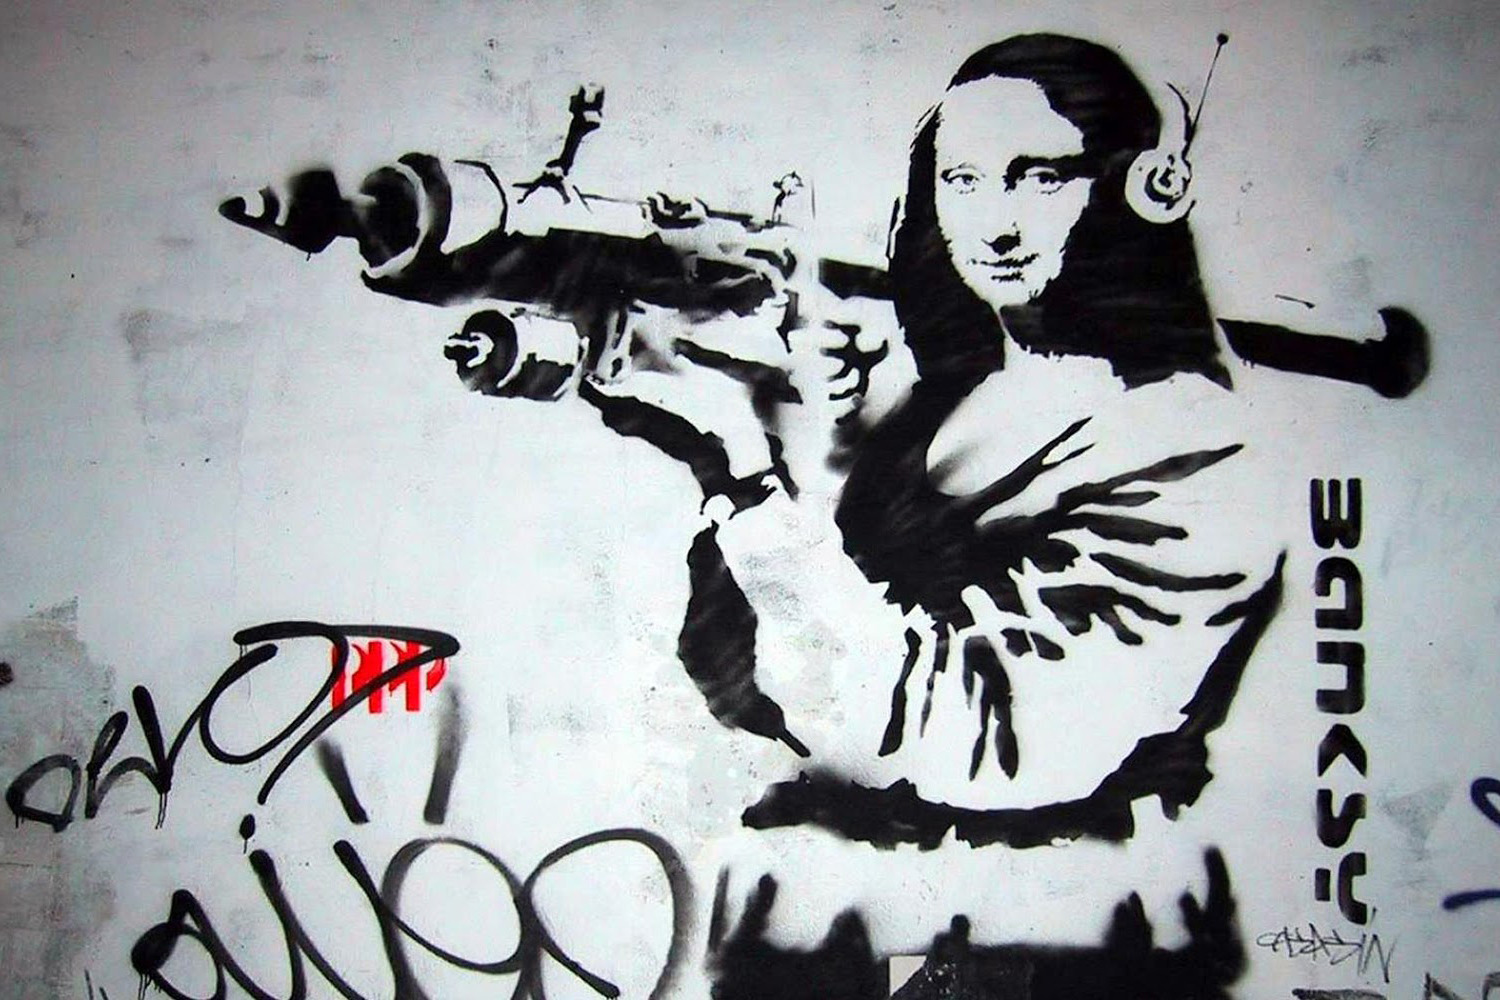 «Make art, not war»